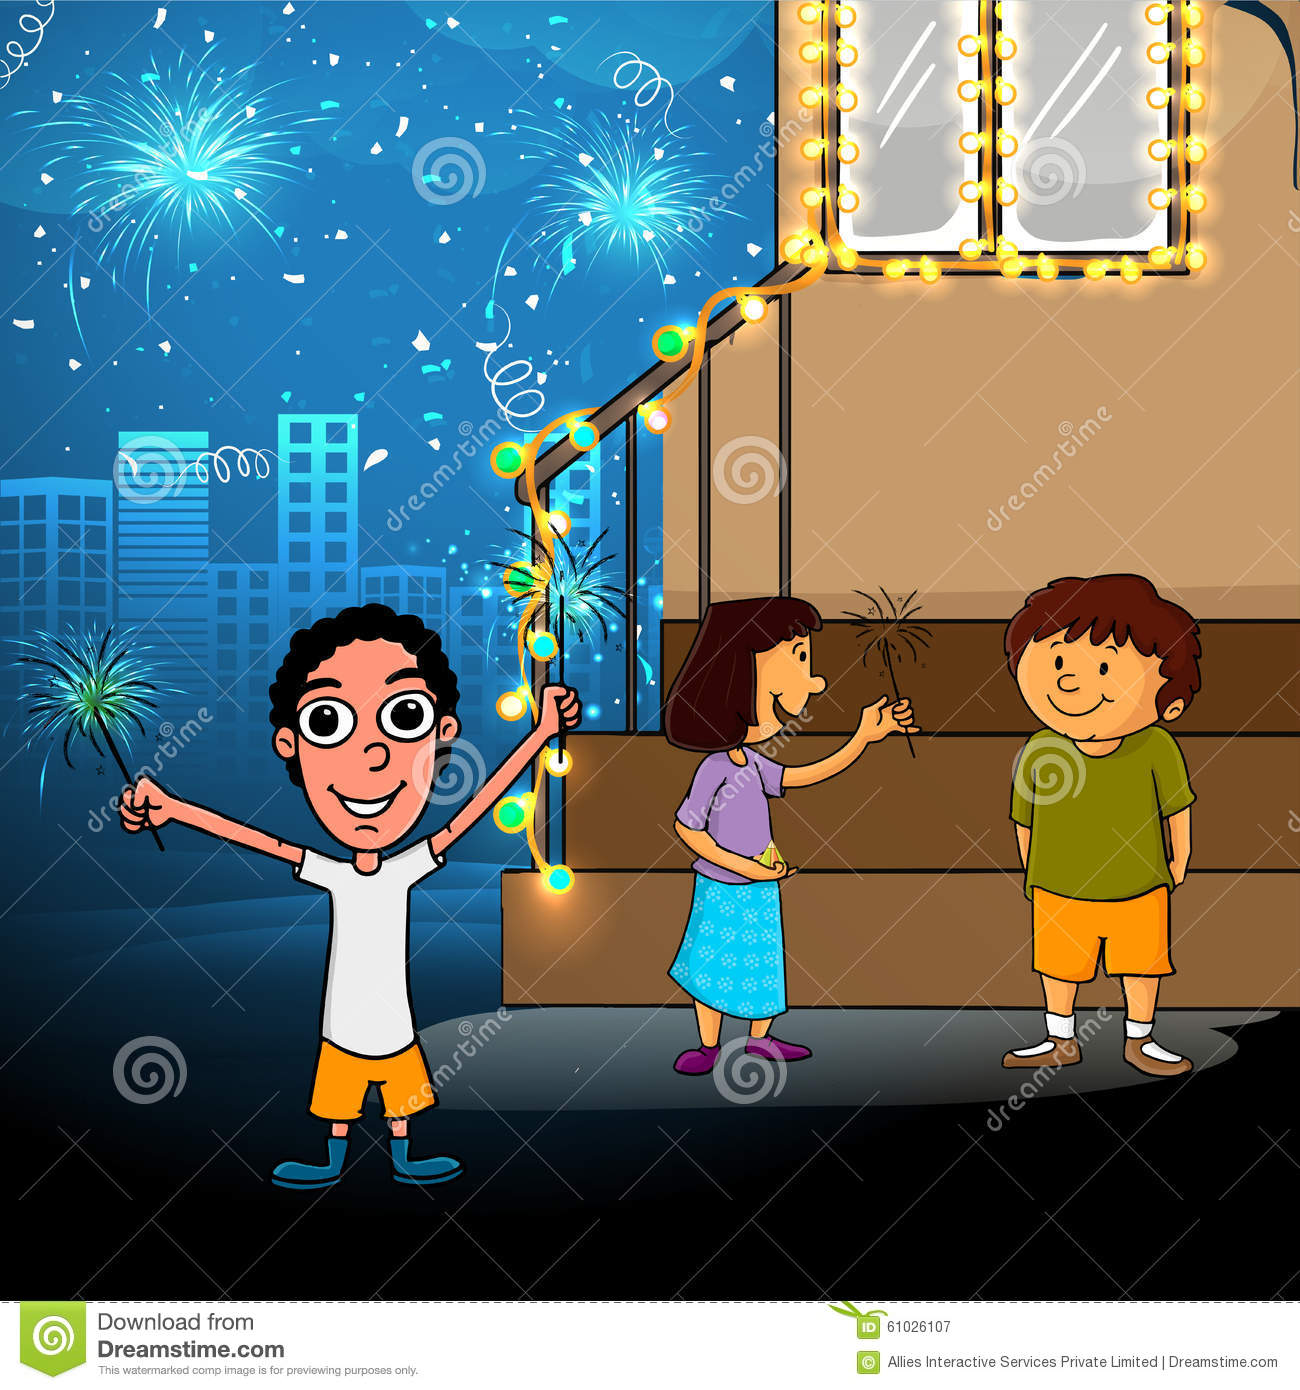 Cute Kids For Happy Diwali Celebration. Stock Illustration ... for diwali animation for kids  10lpwja